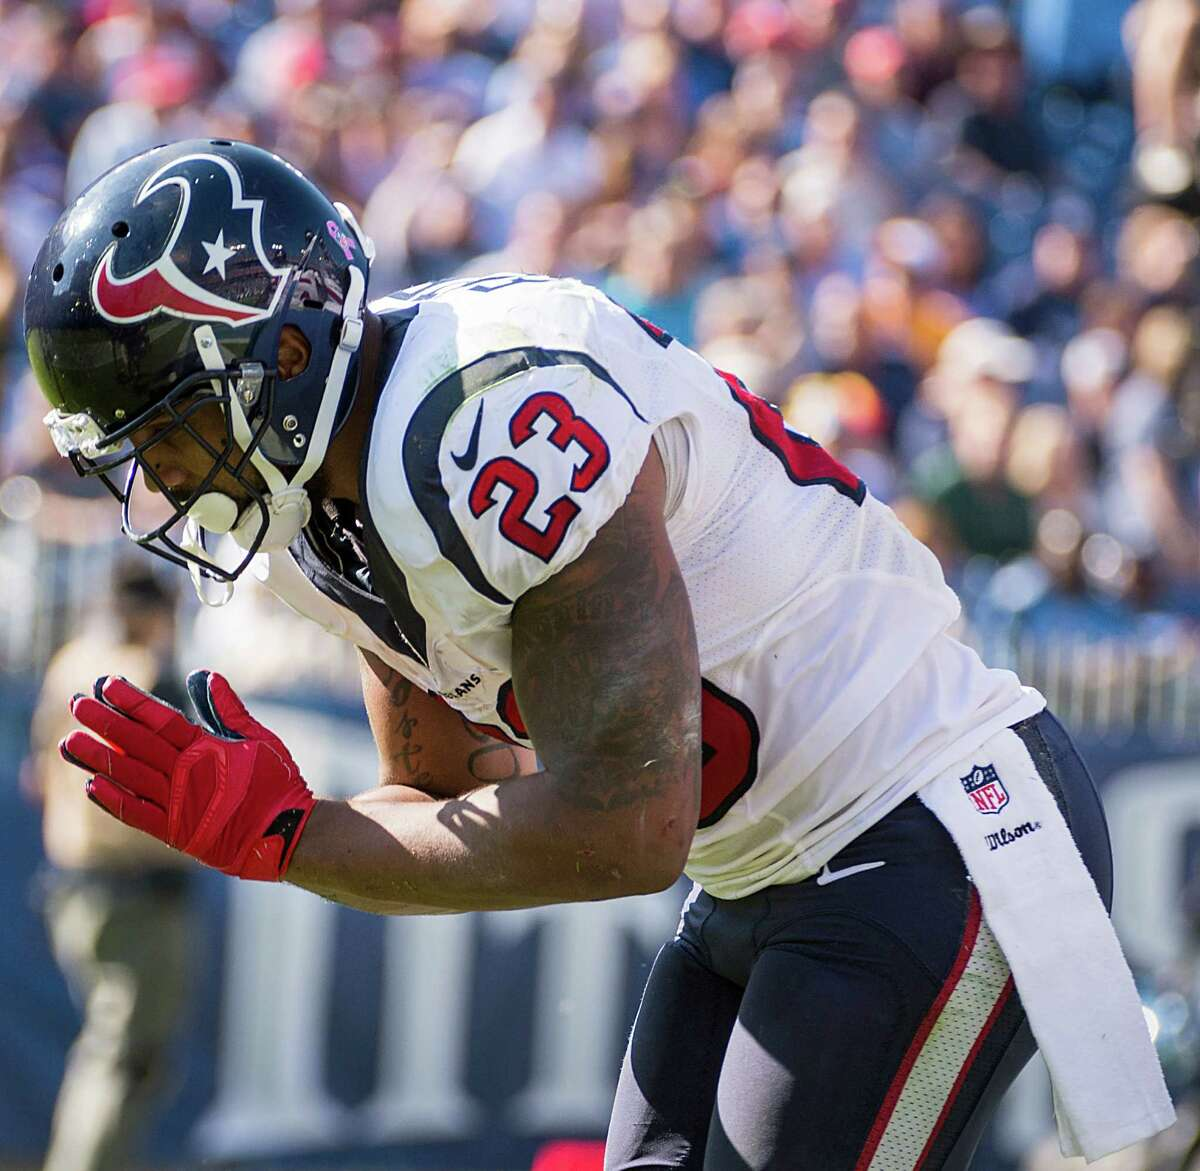 Taking a bow has become Arian Foster's end-zone ritual each time he scores. At his current rate - nine touchdowns (seven rushing, two receiving) in eight games this year - the Texans running back may need salve for a sore back by season's end.